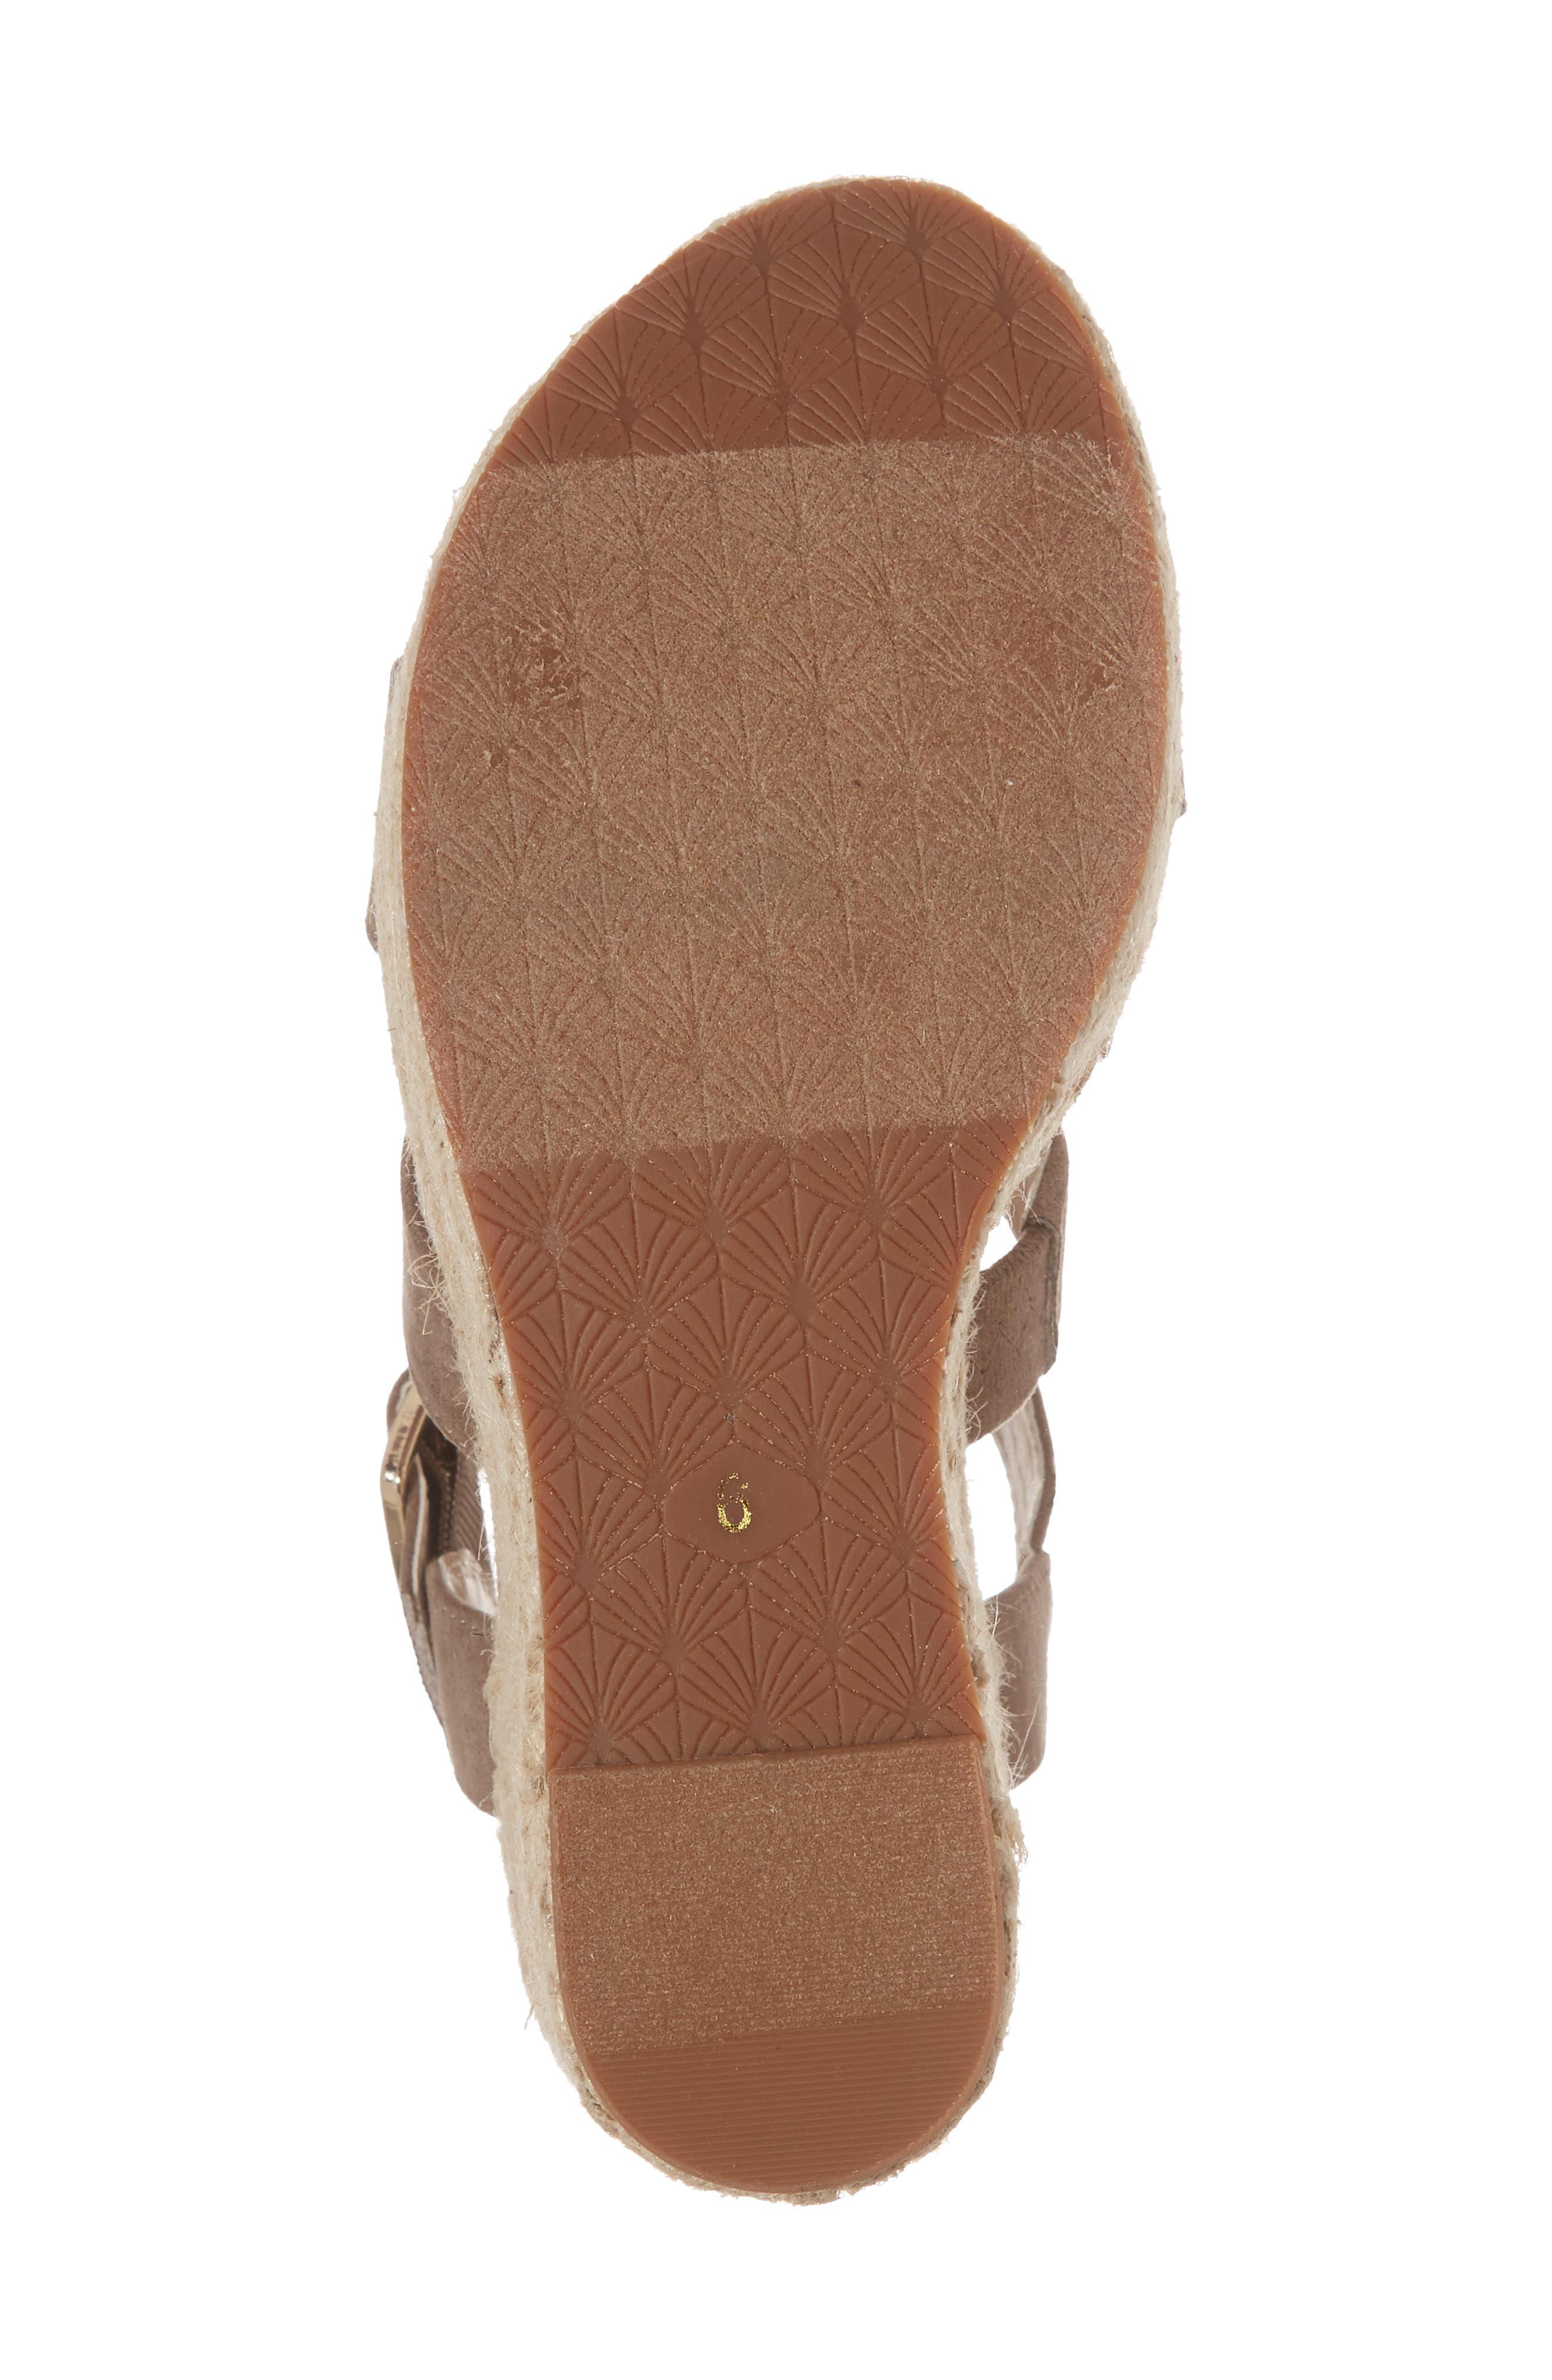 Snack Bar Espadrille Wedge Sandal,                             Alternate thumbnail 6, color,                             Taupe Suede